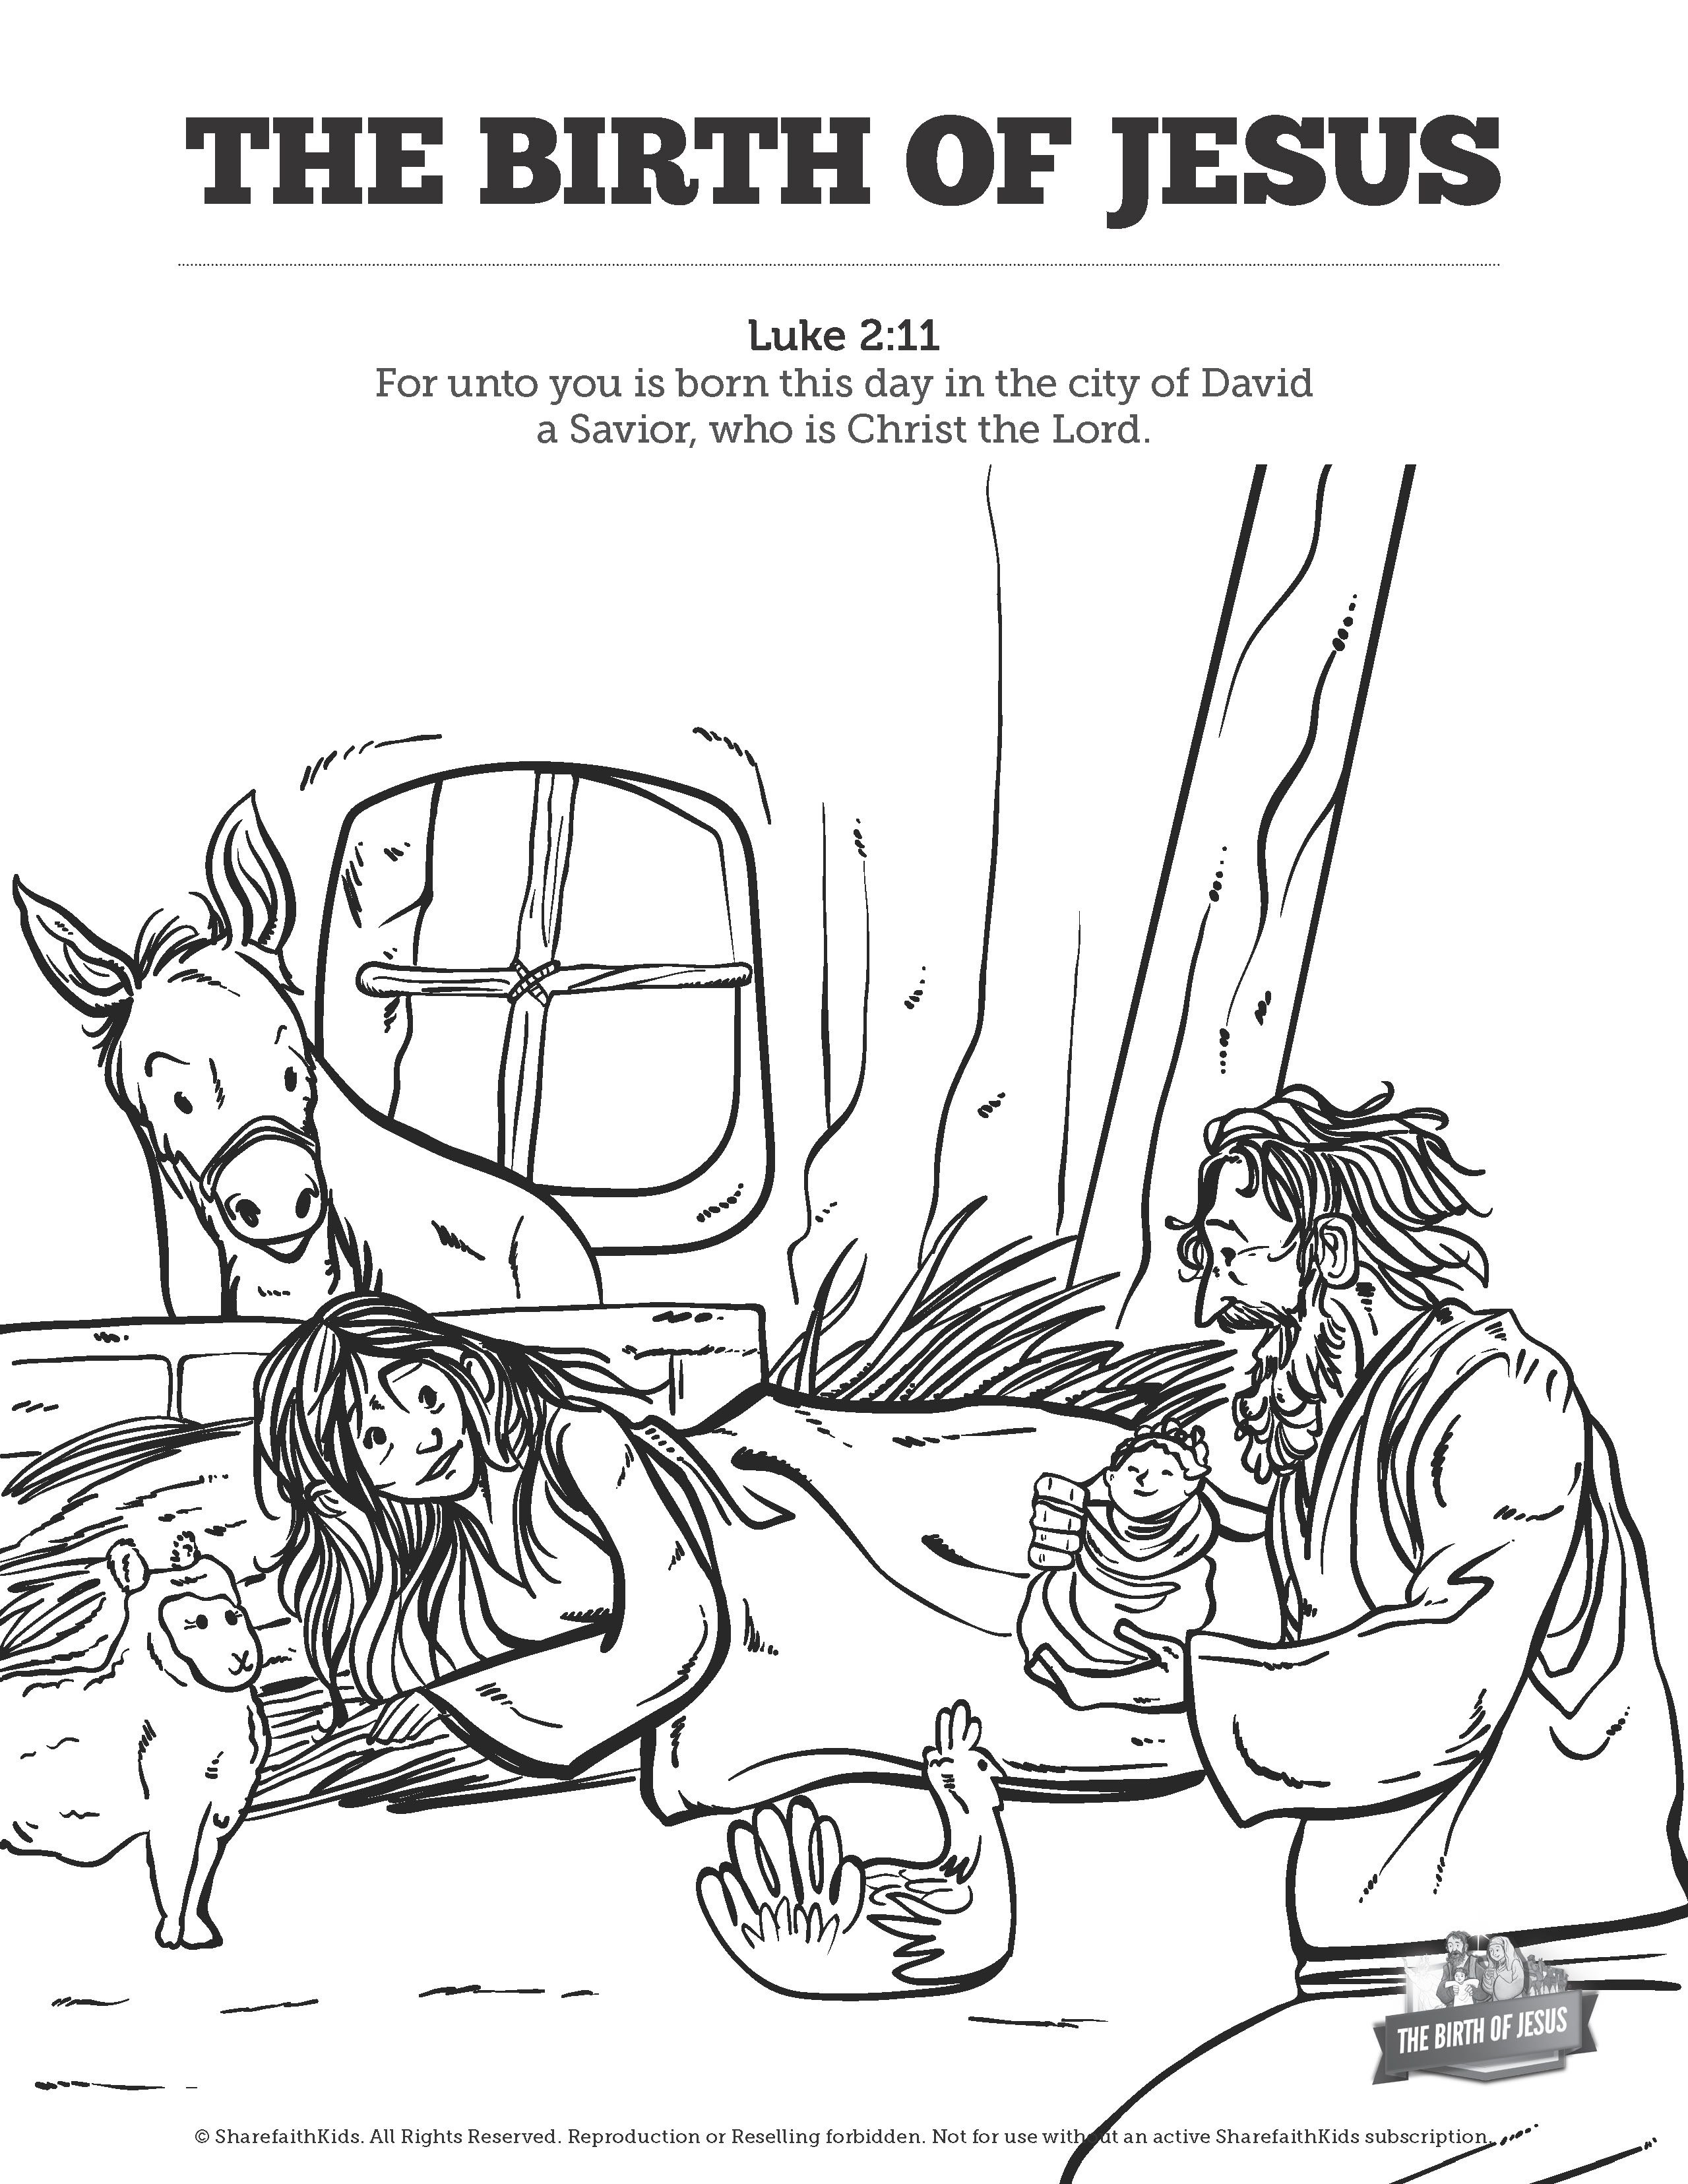 The Birth of Jesus Sunday School Coloring Pages: Your kids